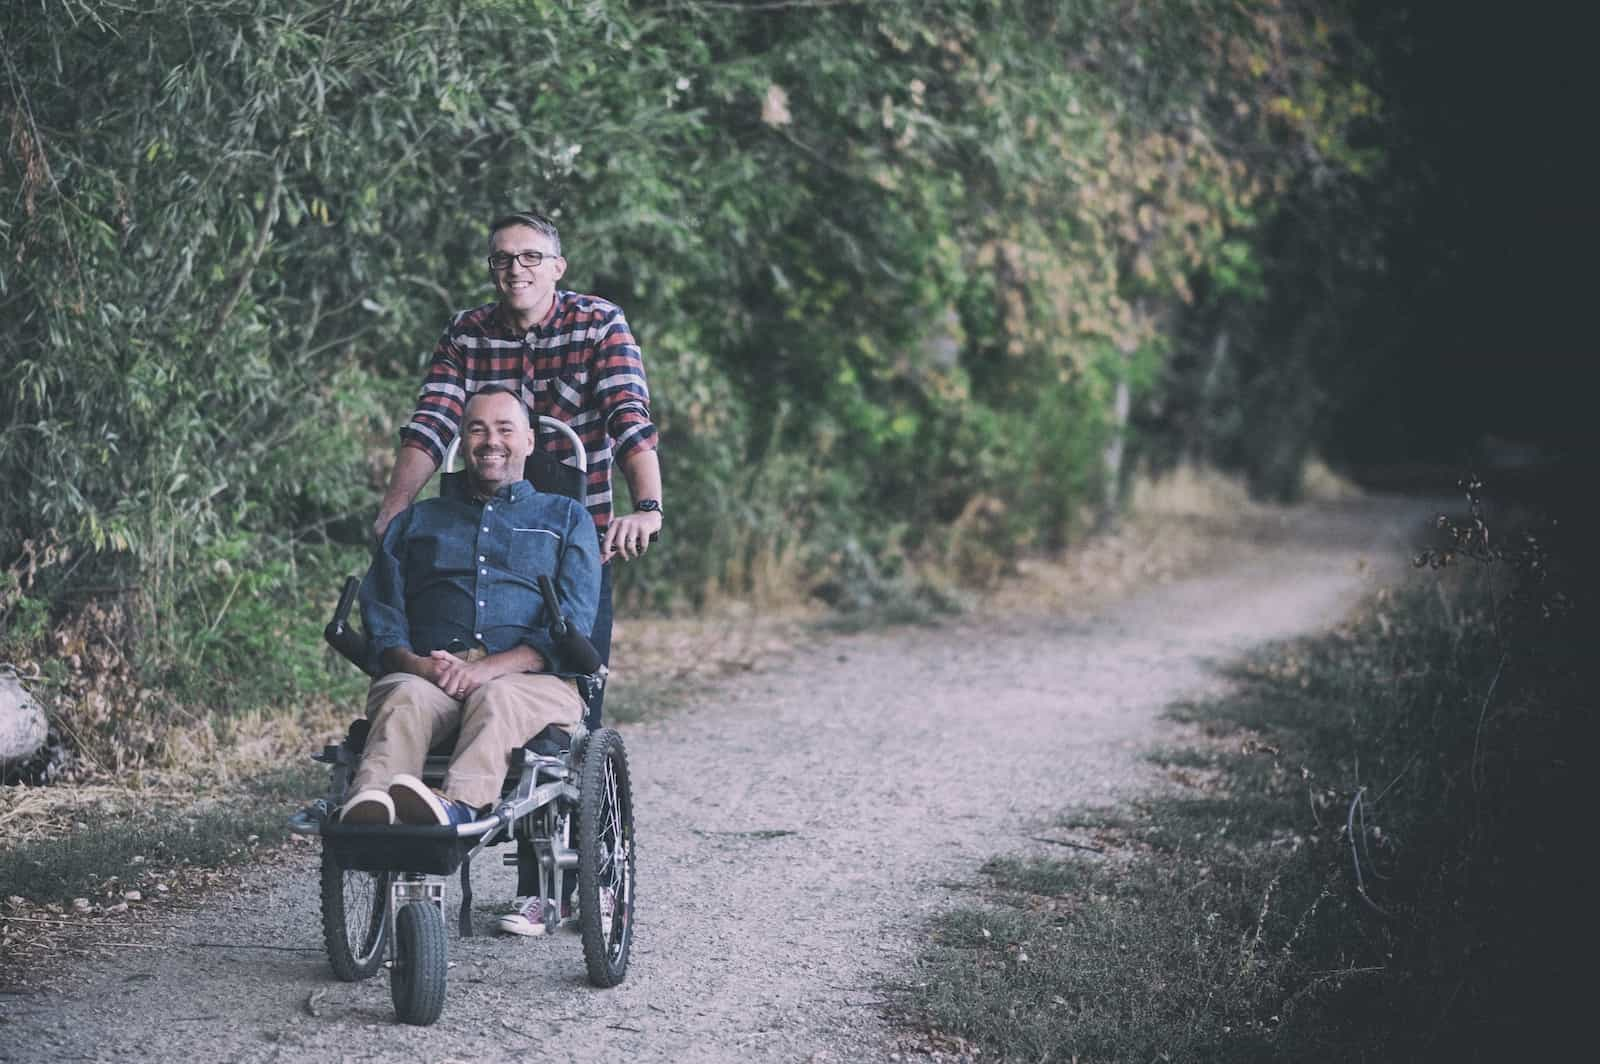 The authors of Imprints; one man stands behind another man sitting in a wheelchair on a dirt path.